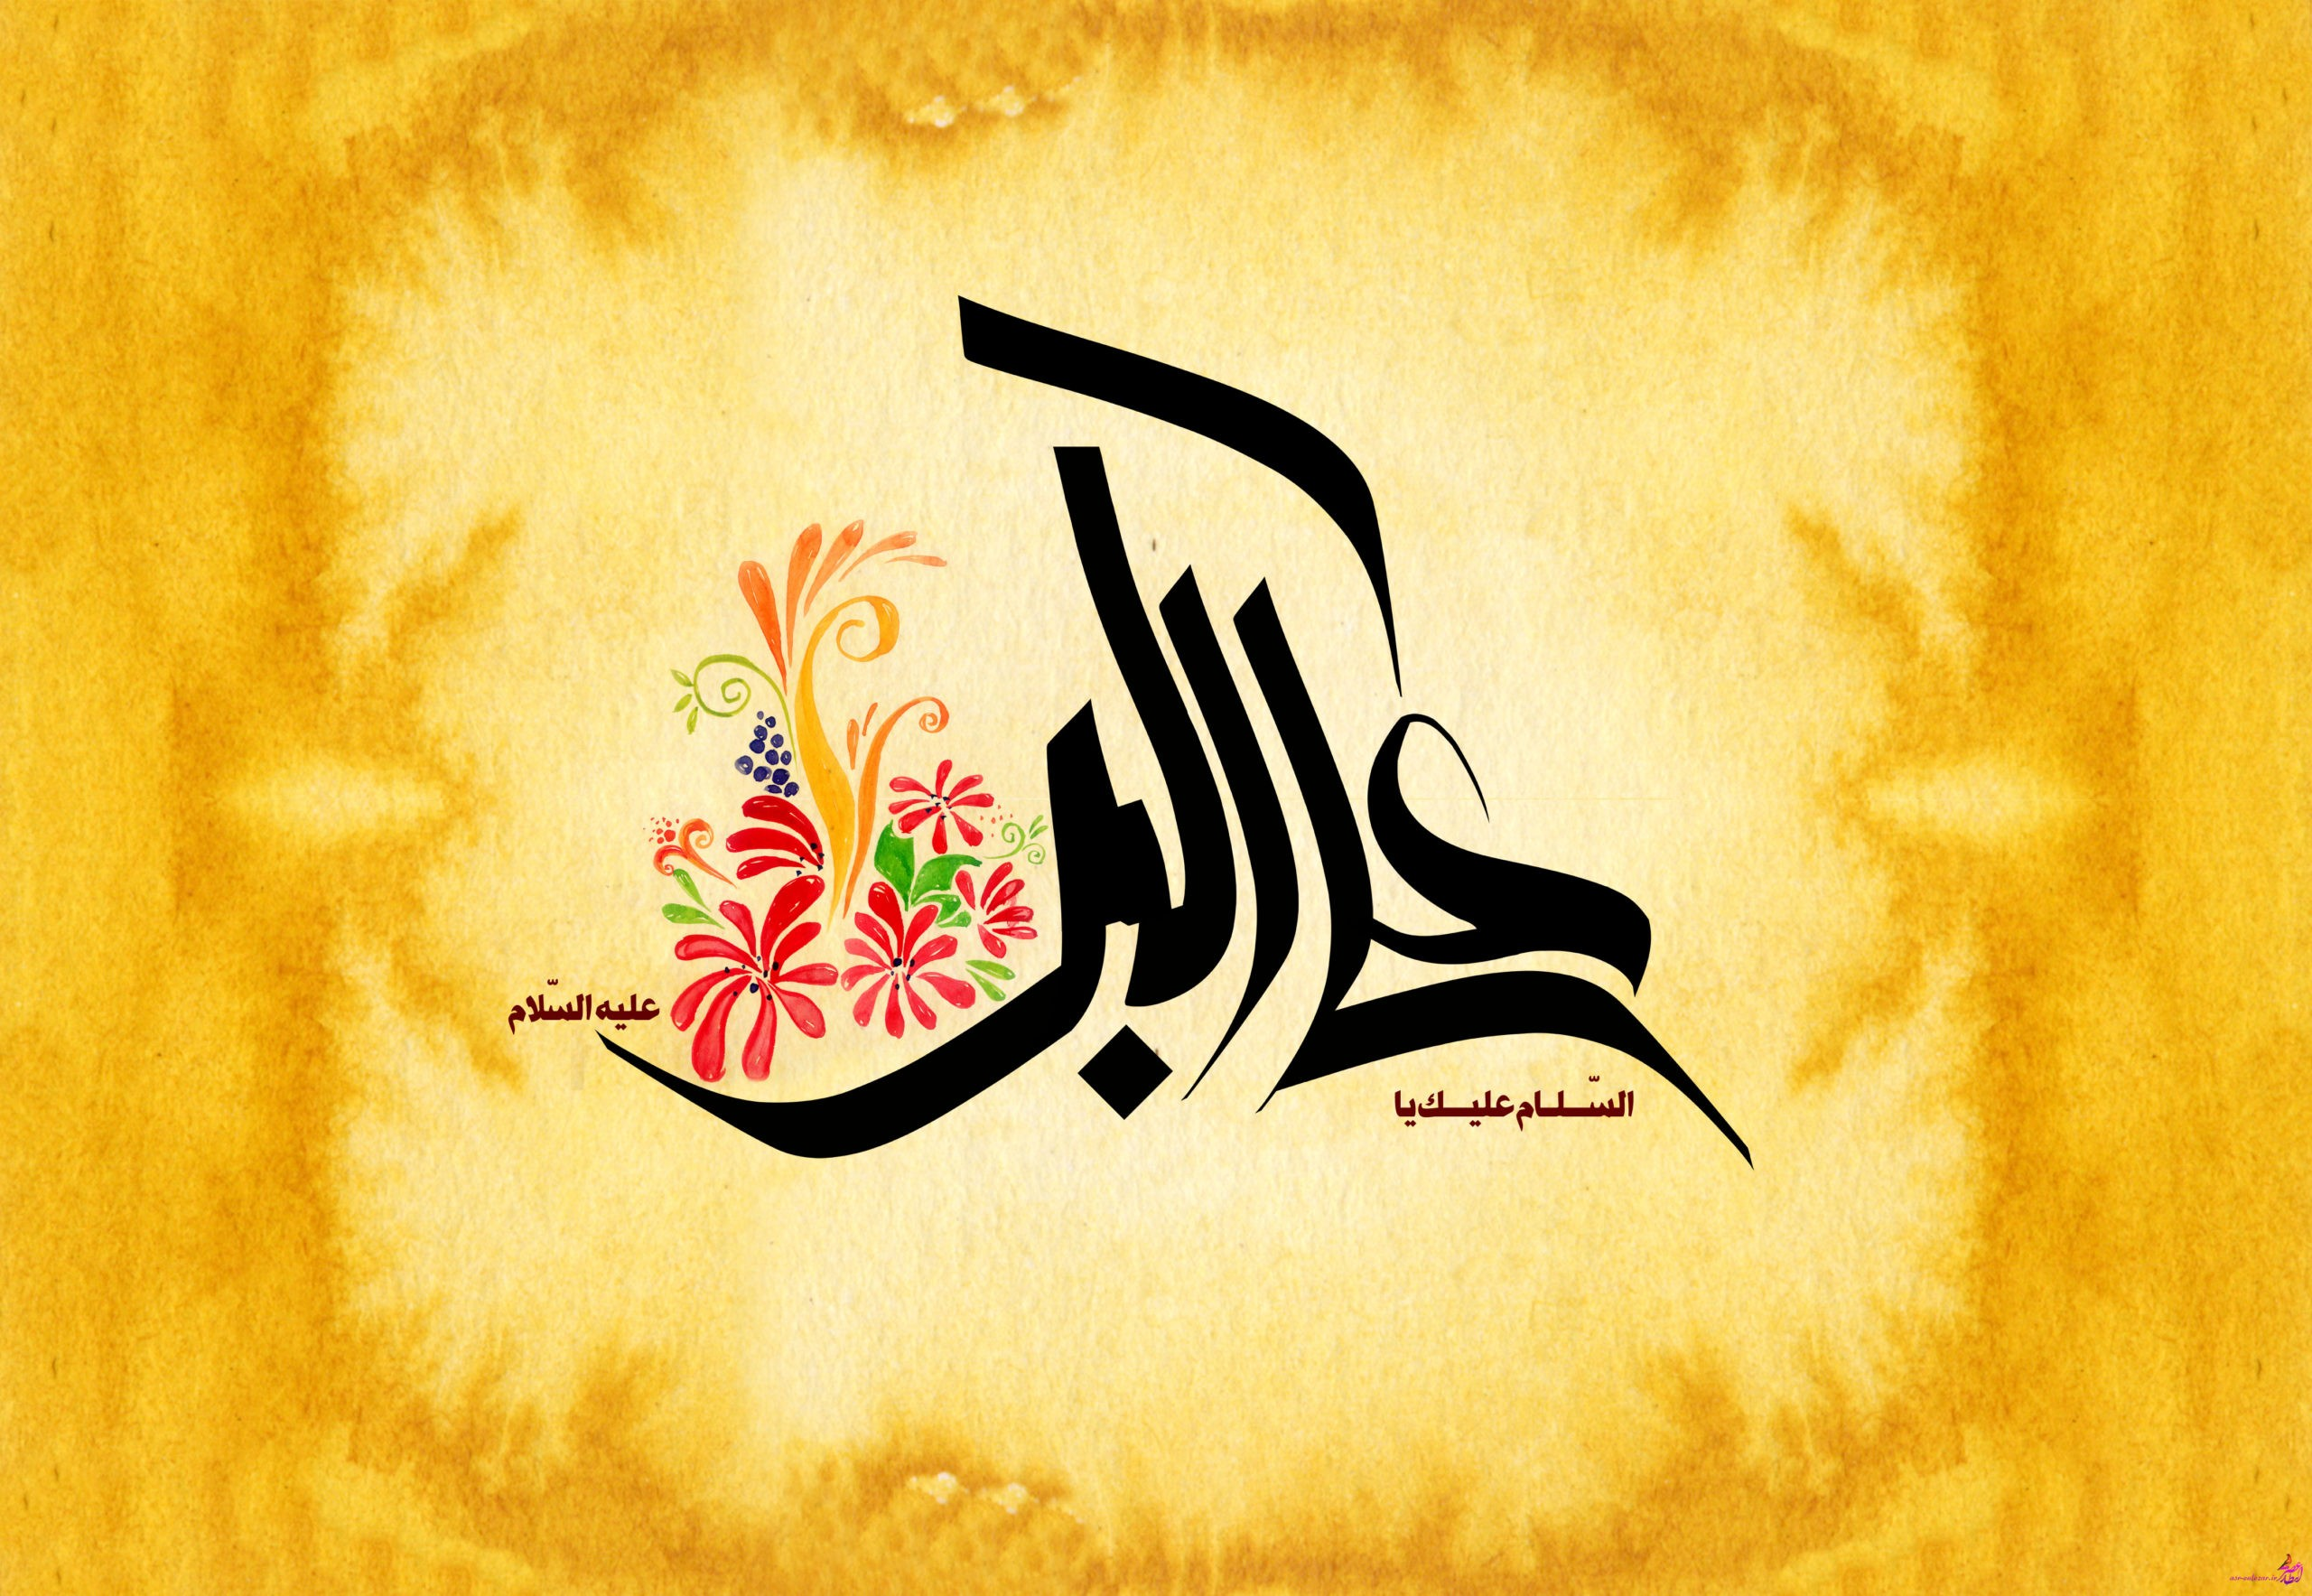 Birth Anniversary of Hazrat Ali Akbar (A.S.) islamic tv channel